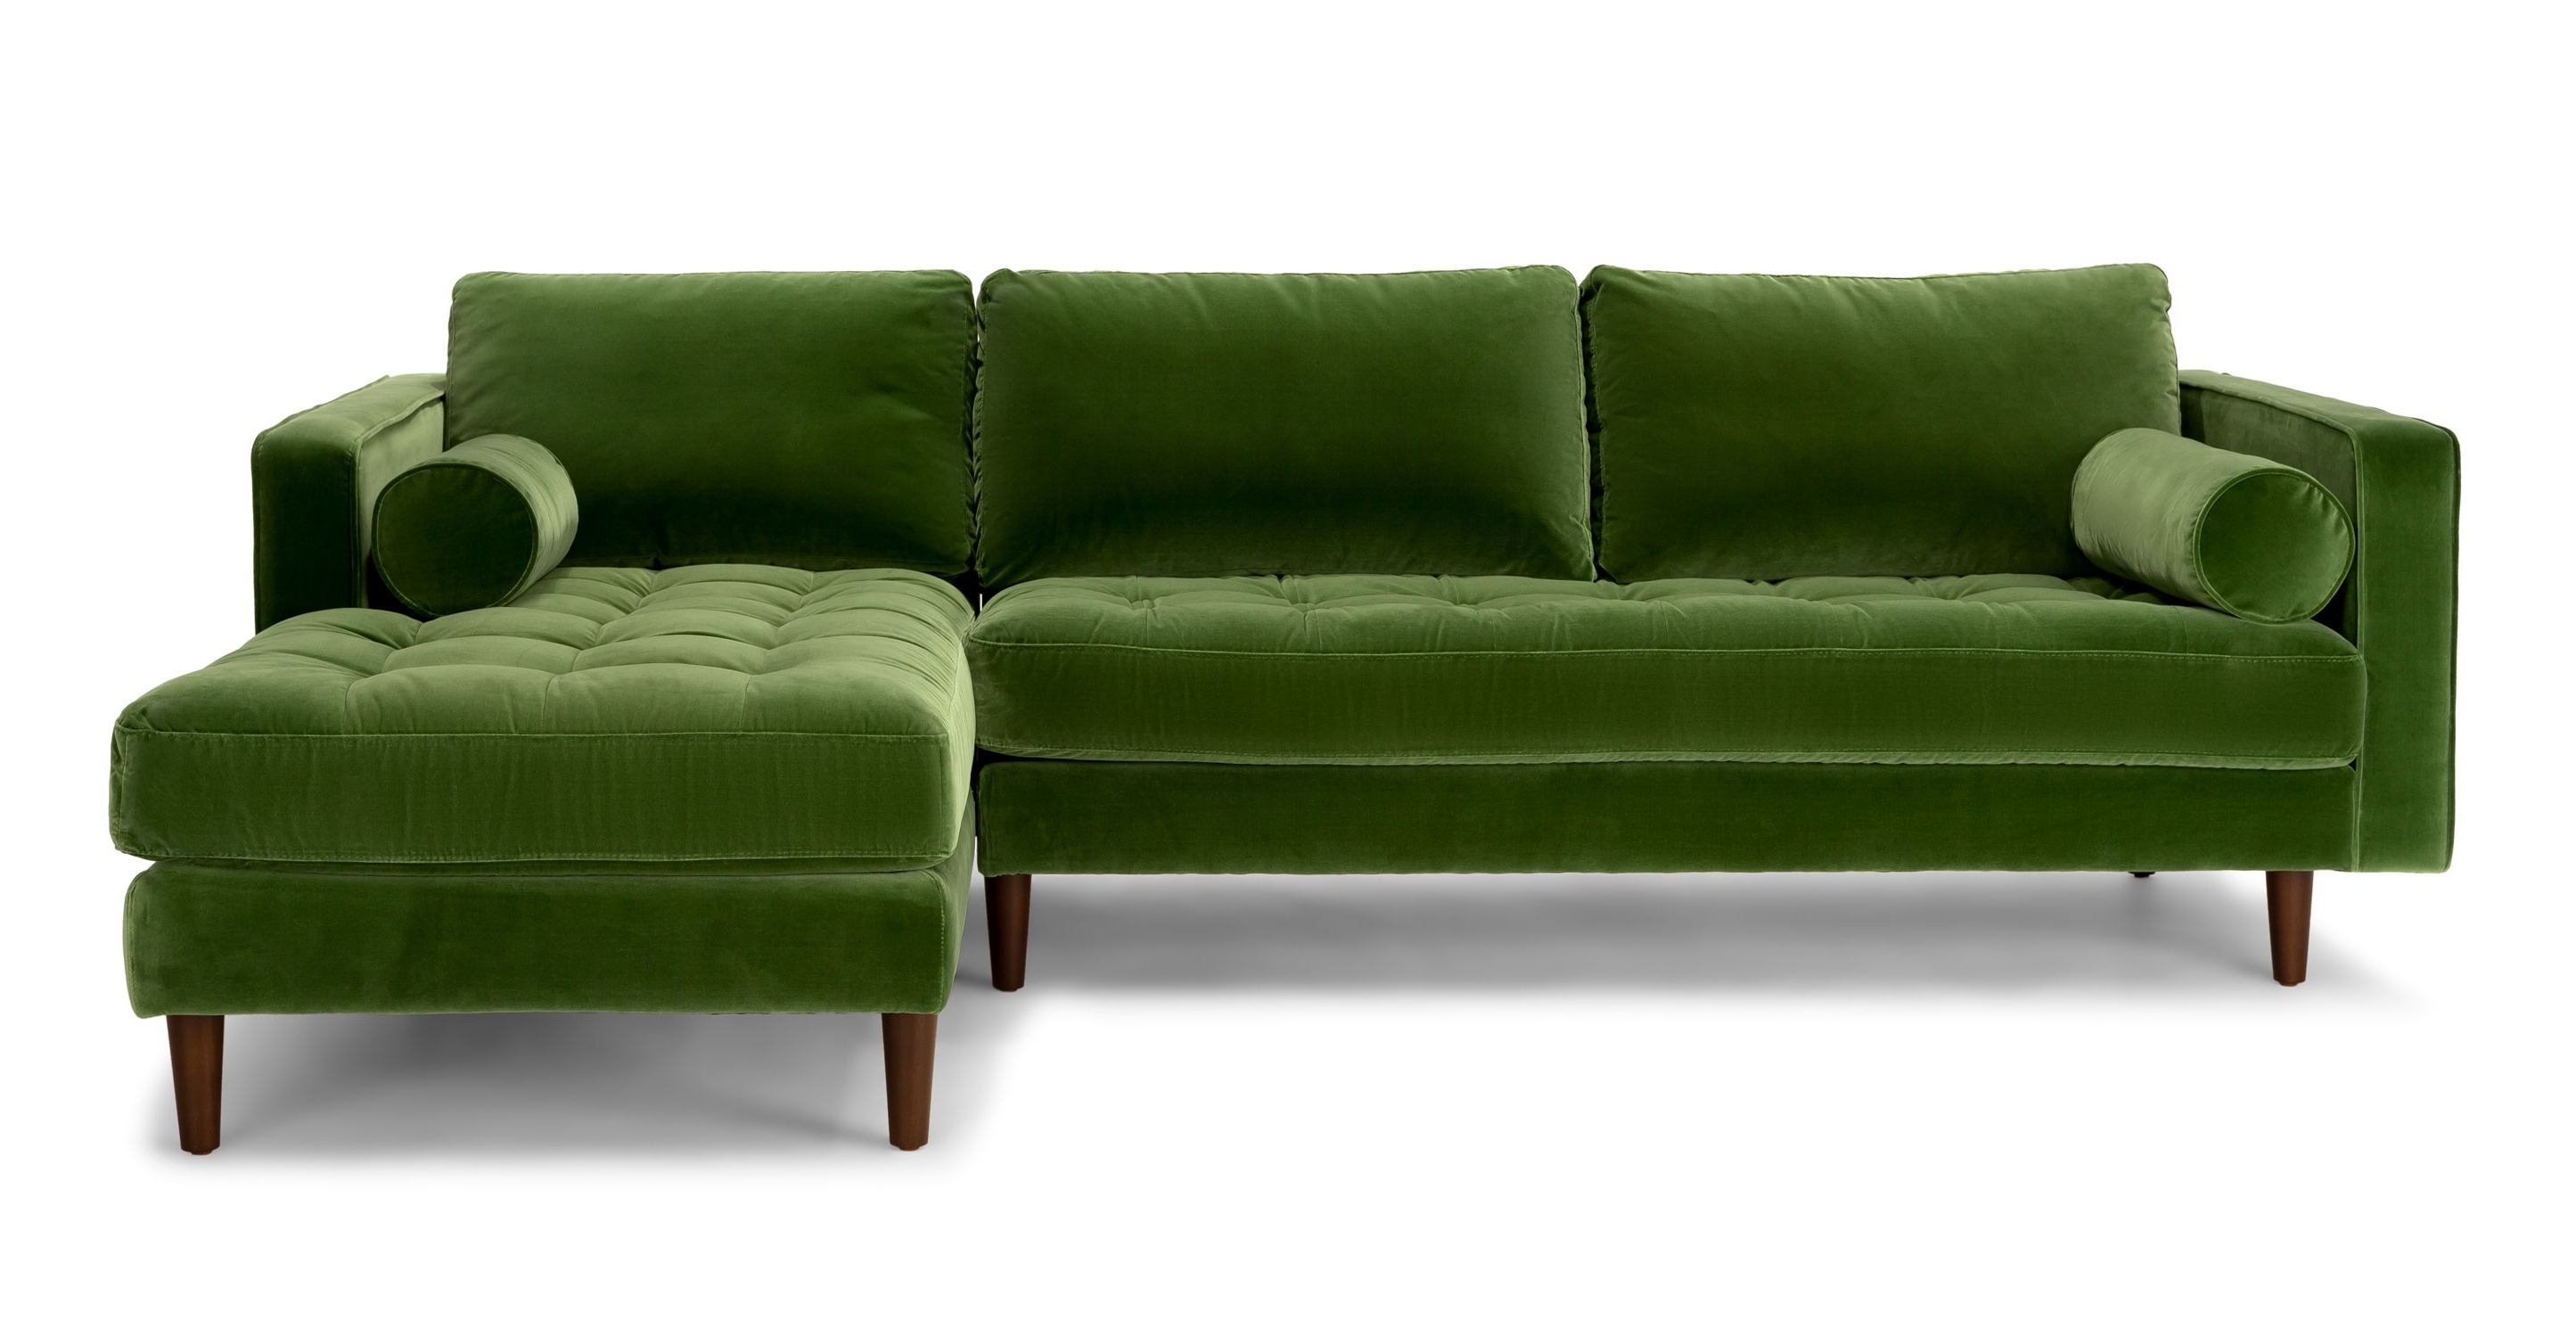 Popular Excellent Sofa On Sale On Green Sectional Sofa Easy As Inside Green Sectional Sofas (View 5 of 20)